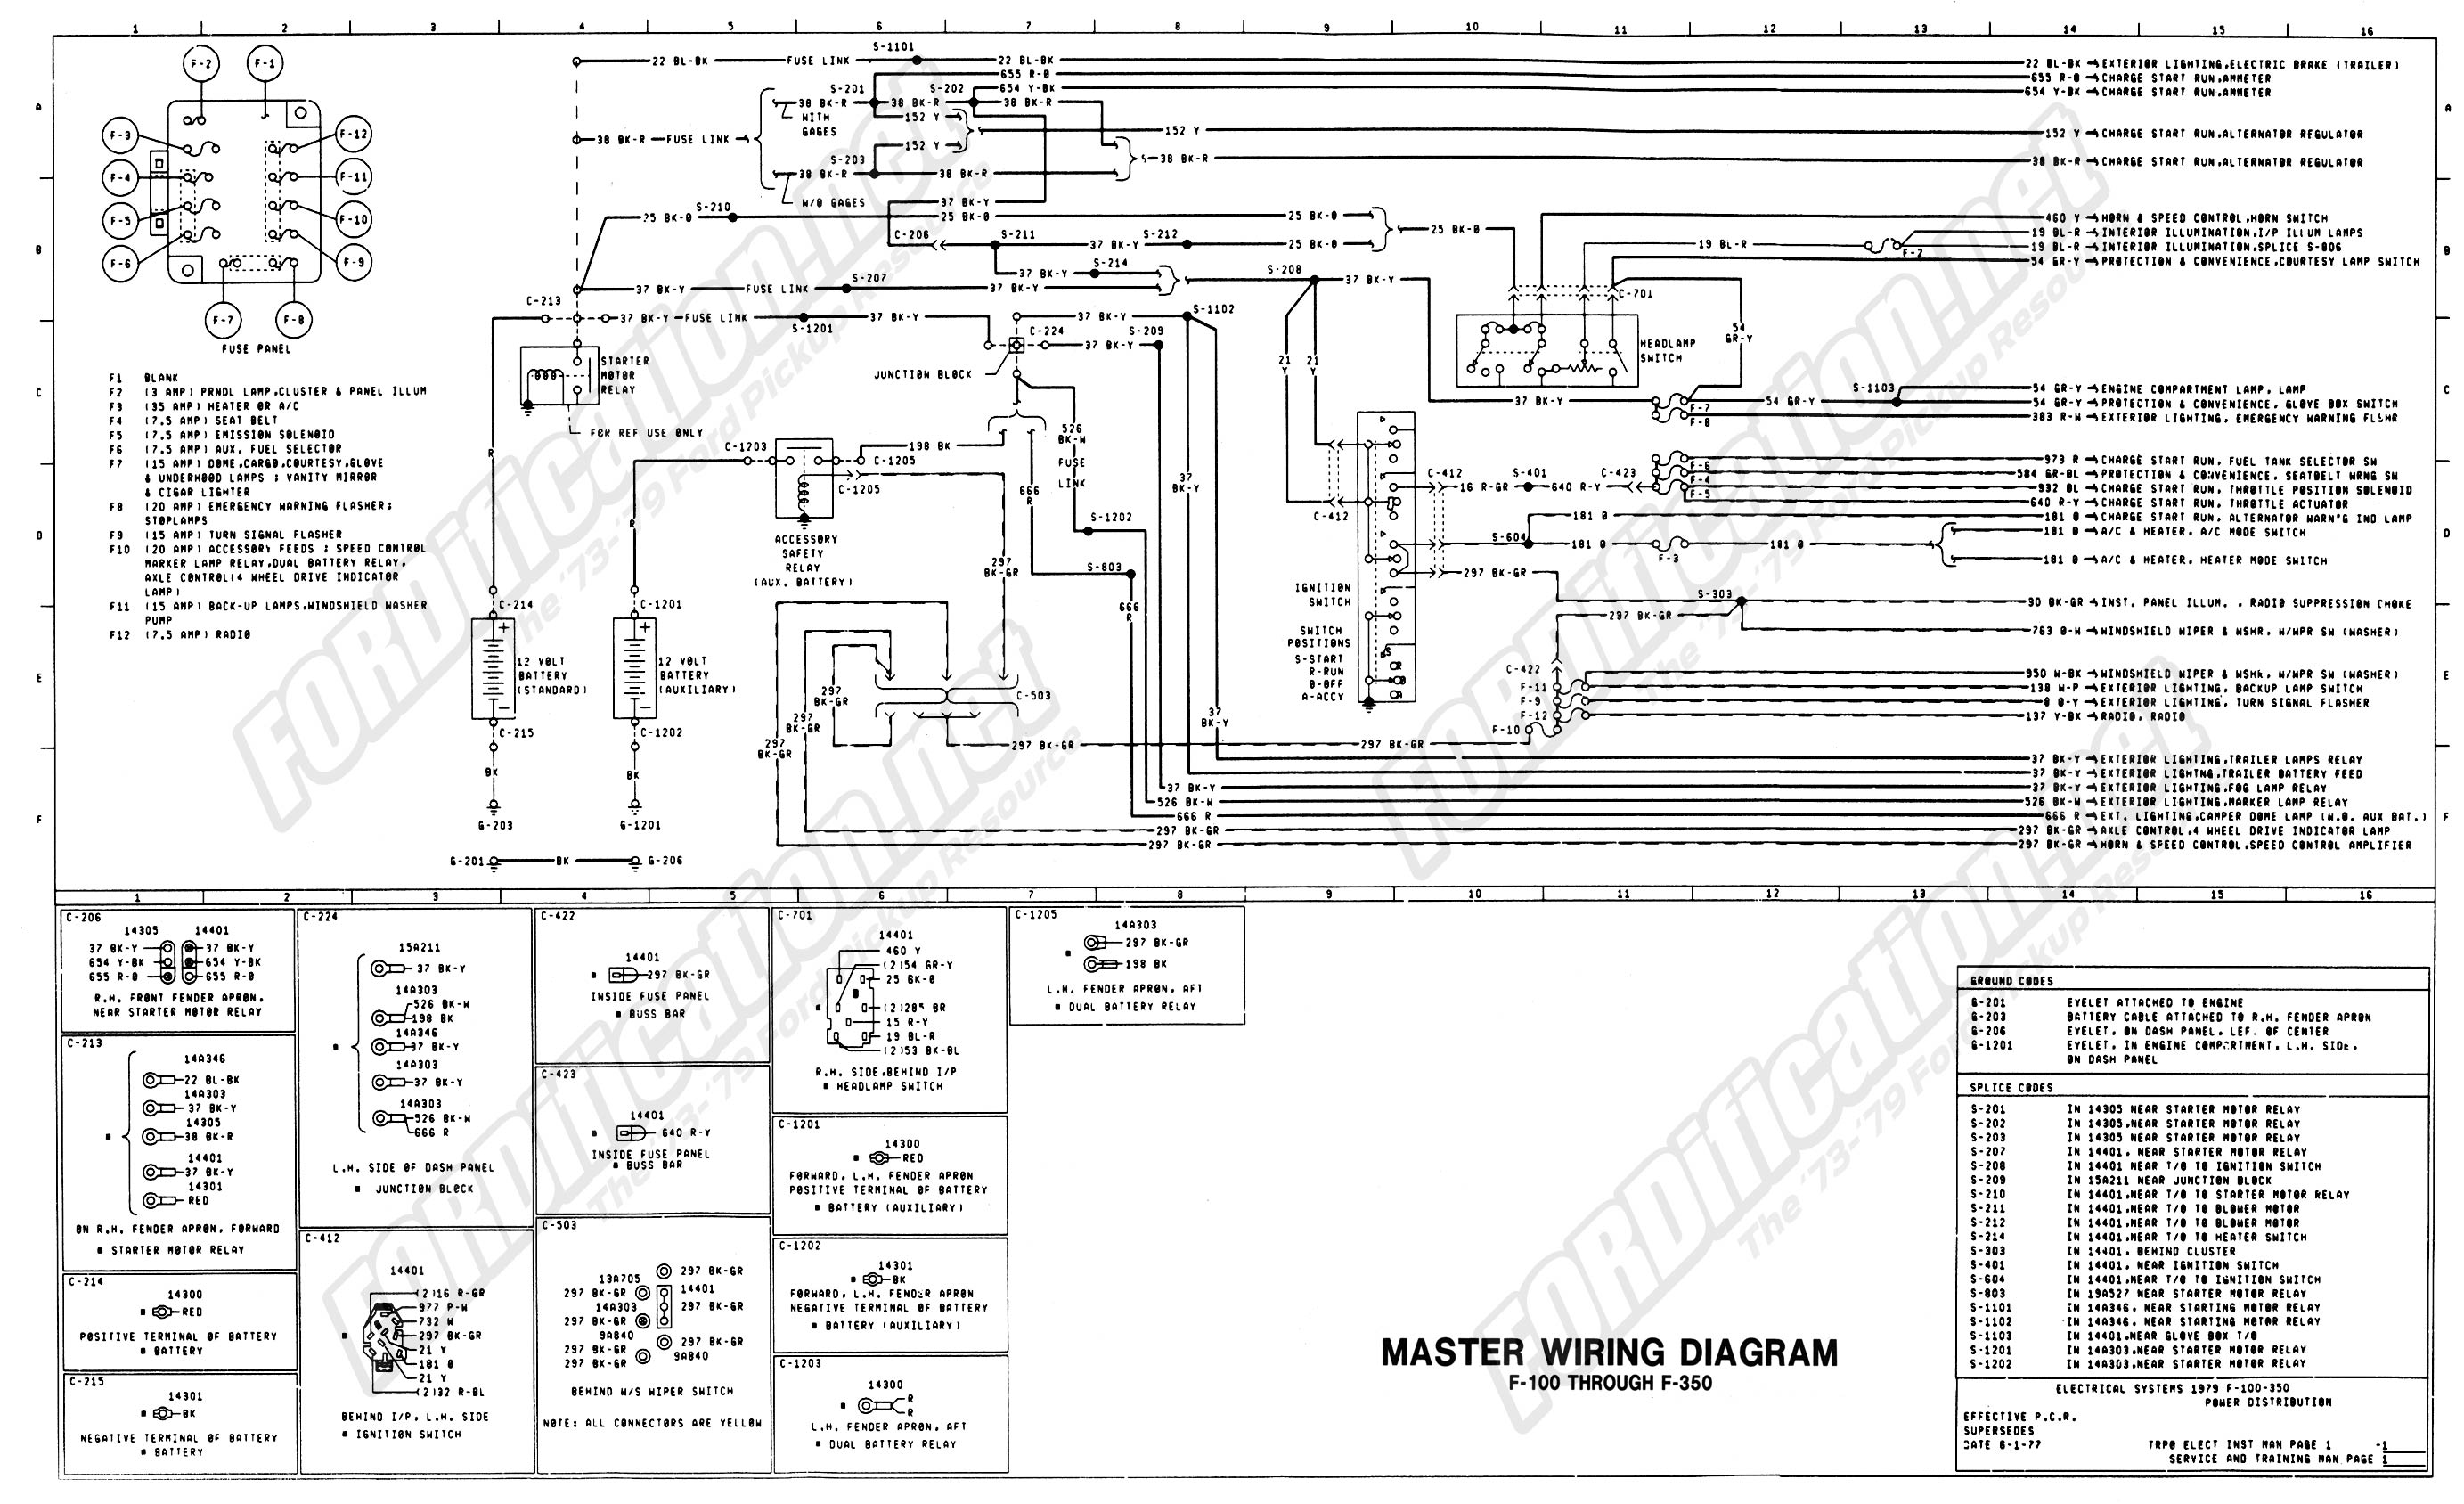 wiring_79master_1of9 1977 dodge van ignition wiring diagram wiring diagram simonand 1972 ford bronco wiring diagram at n-0.co